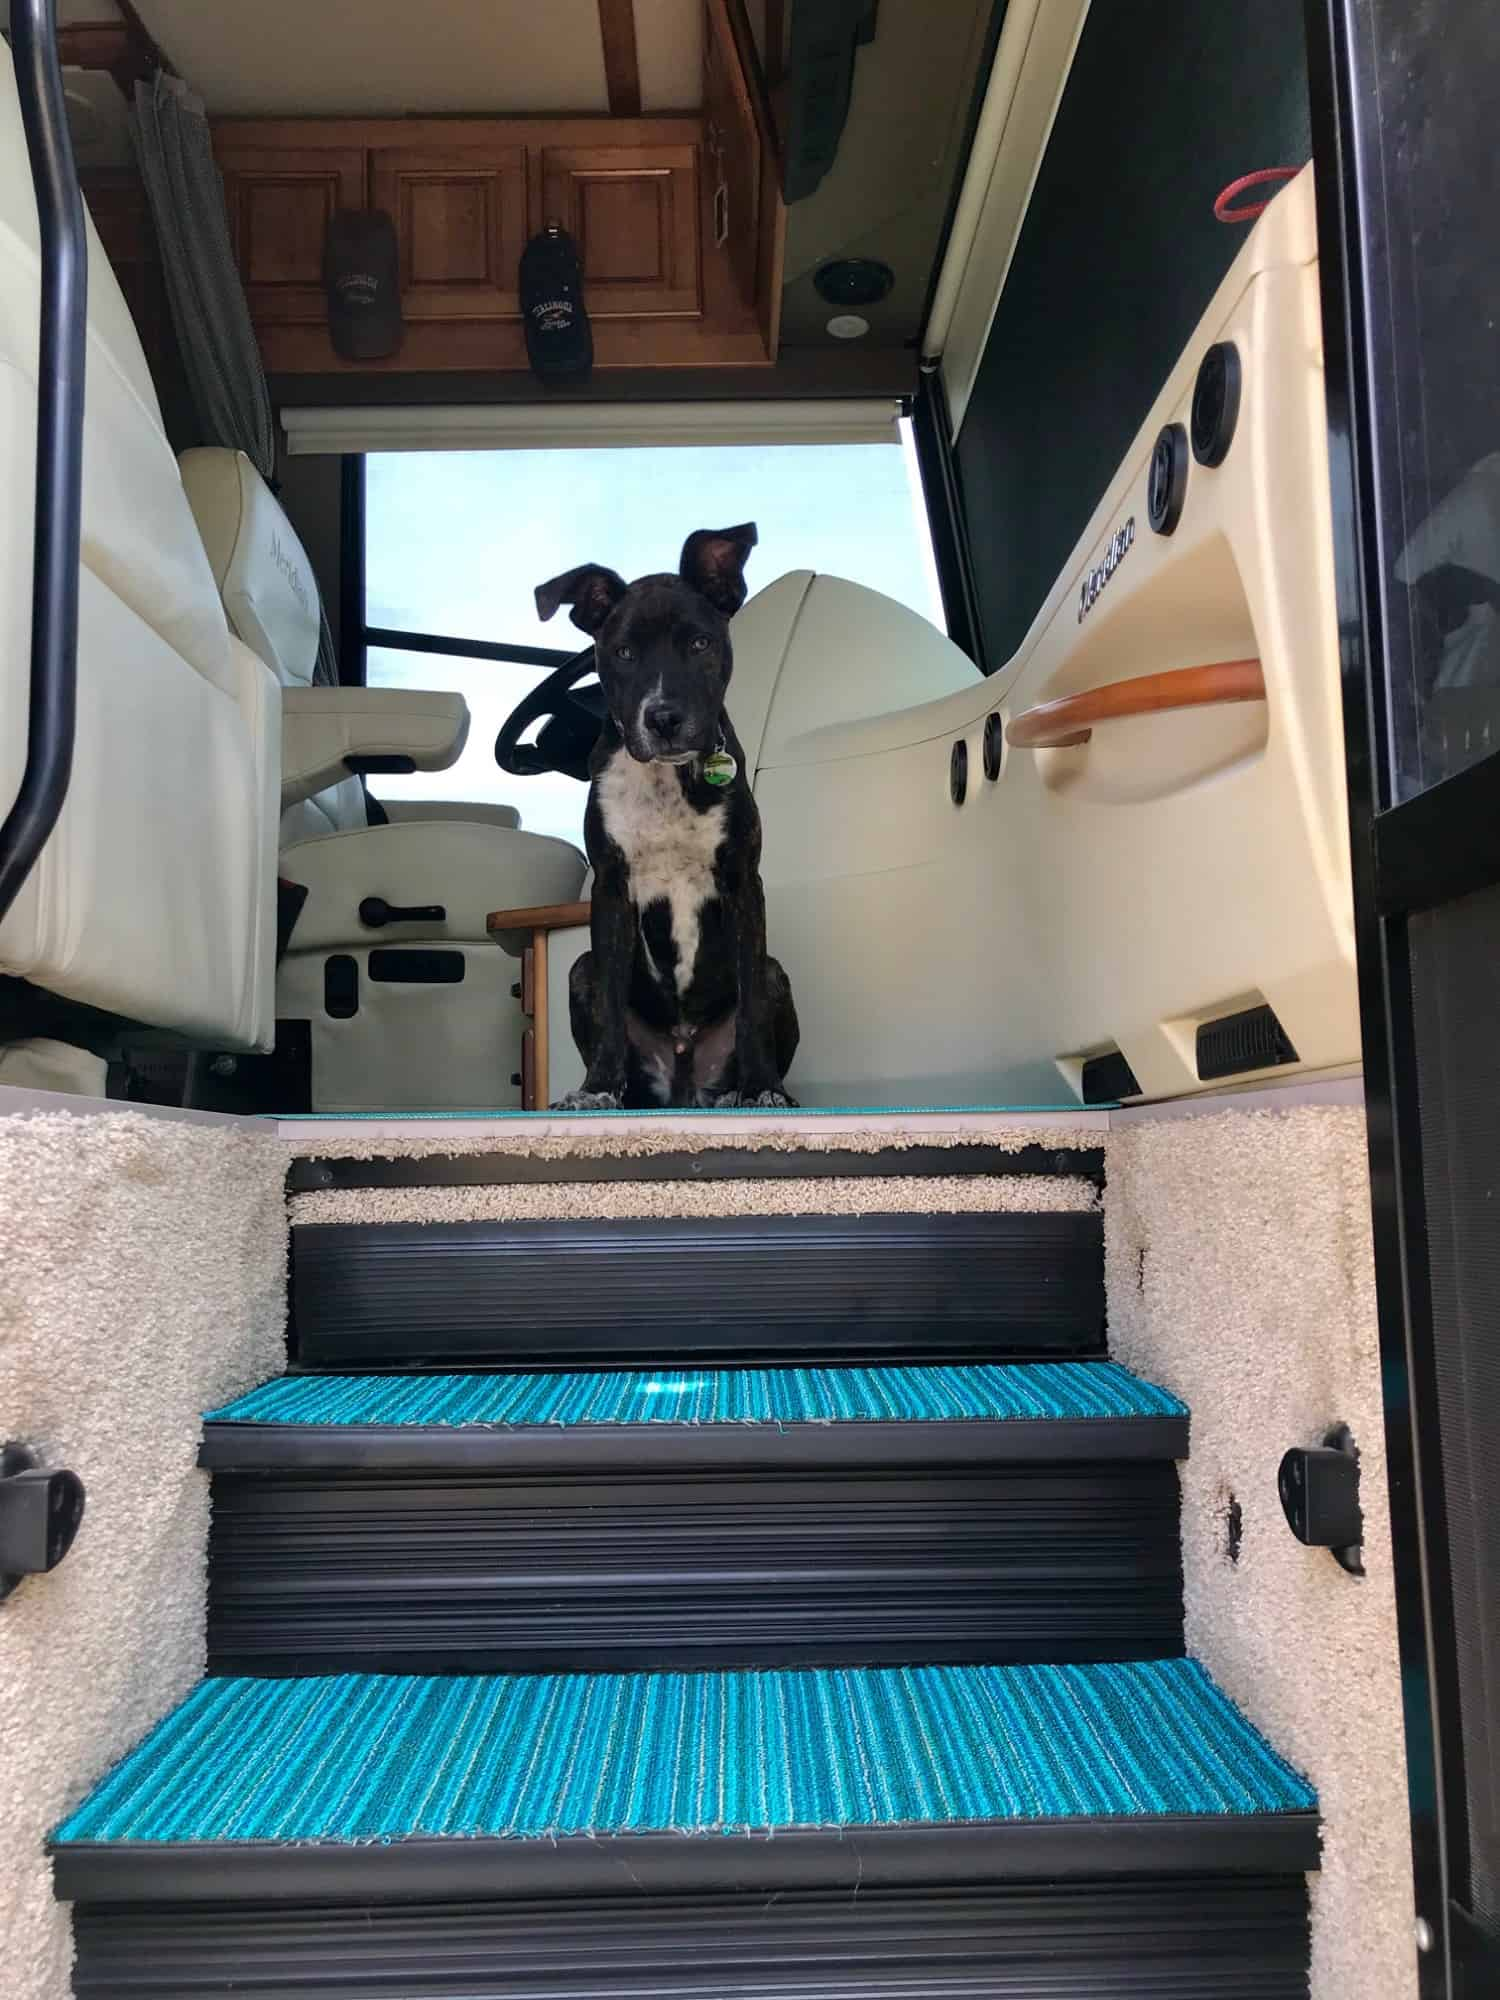 Brindle puppy sitting at the top of the stairs in a motorhome